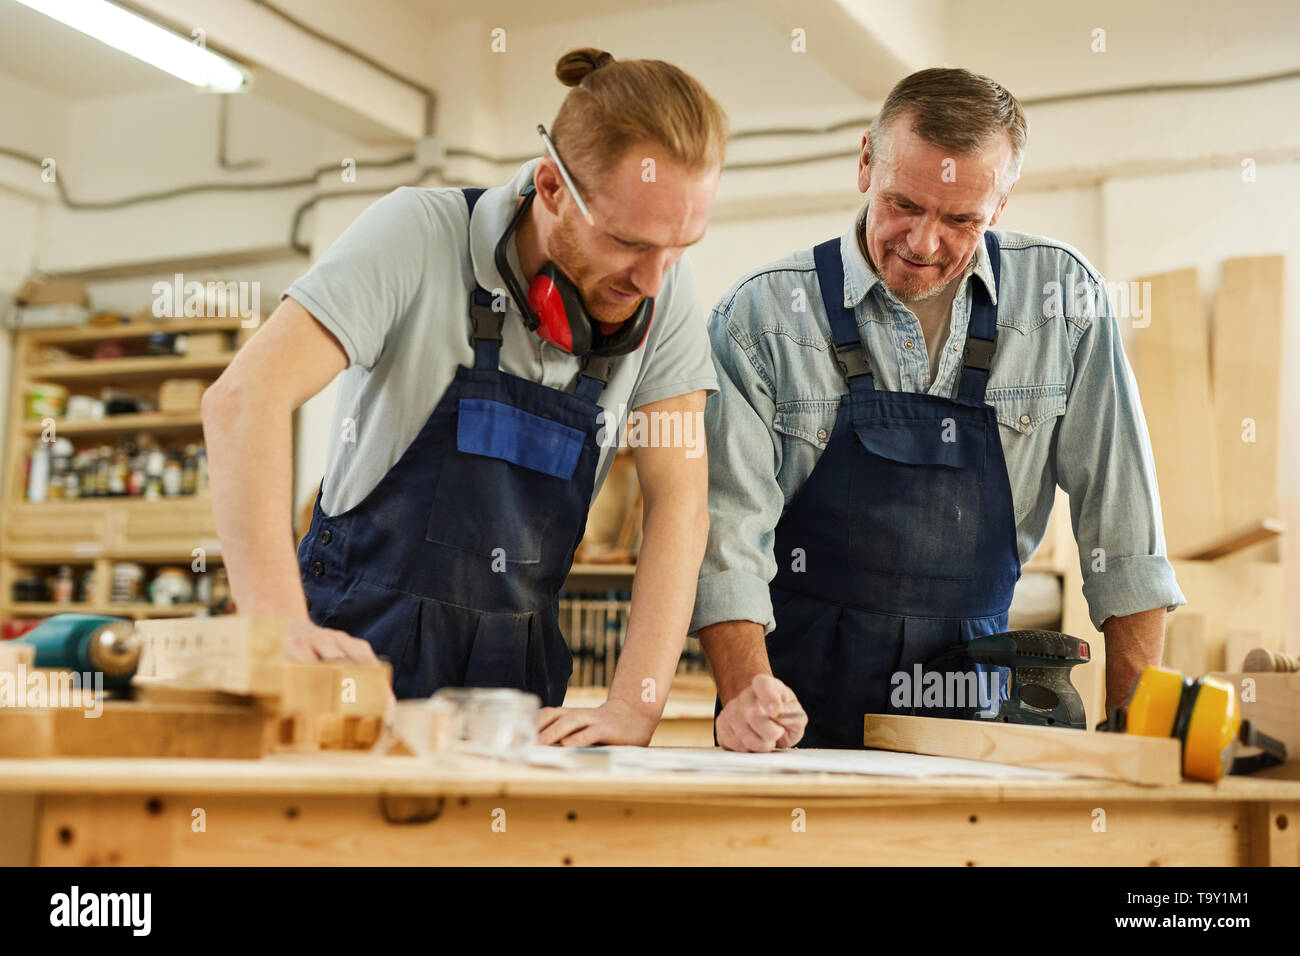 Waist up  portrait of senior carpenter teaching apprentice  while working together  in joinery workshop - Stock Image